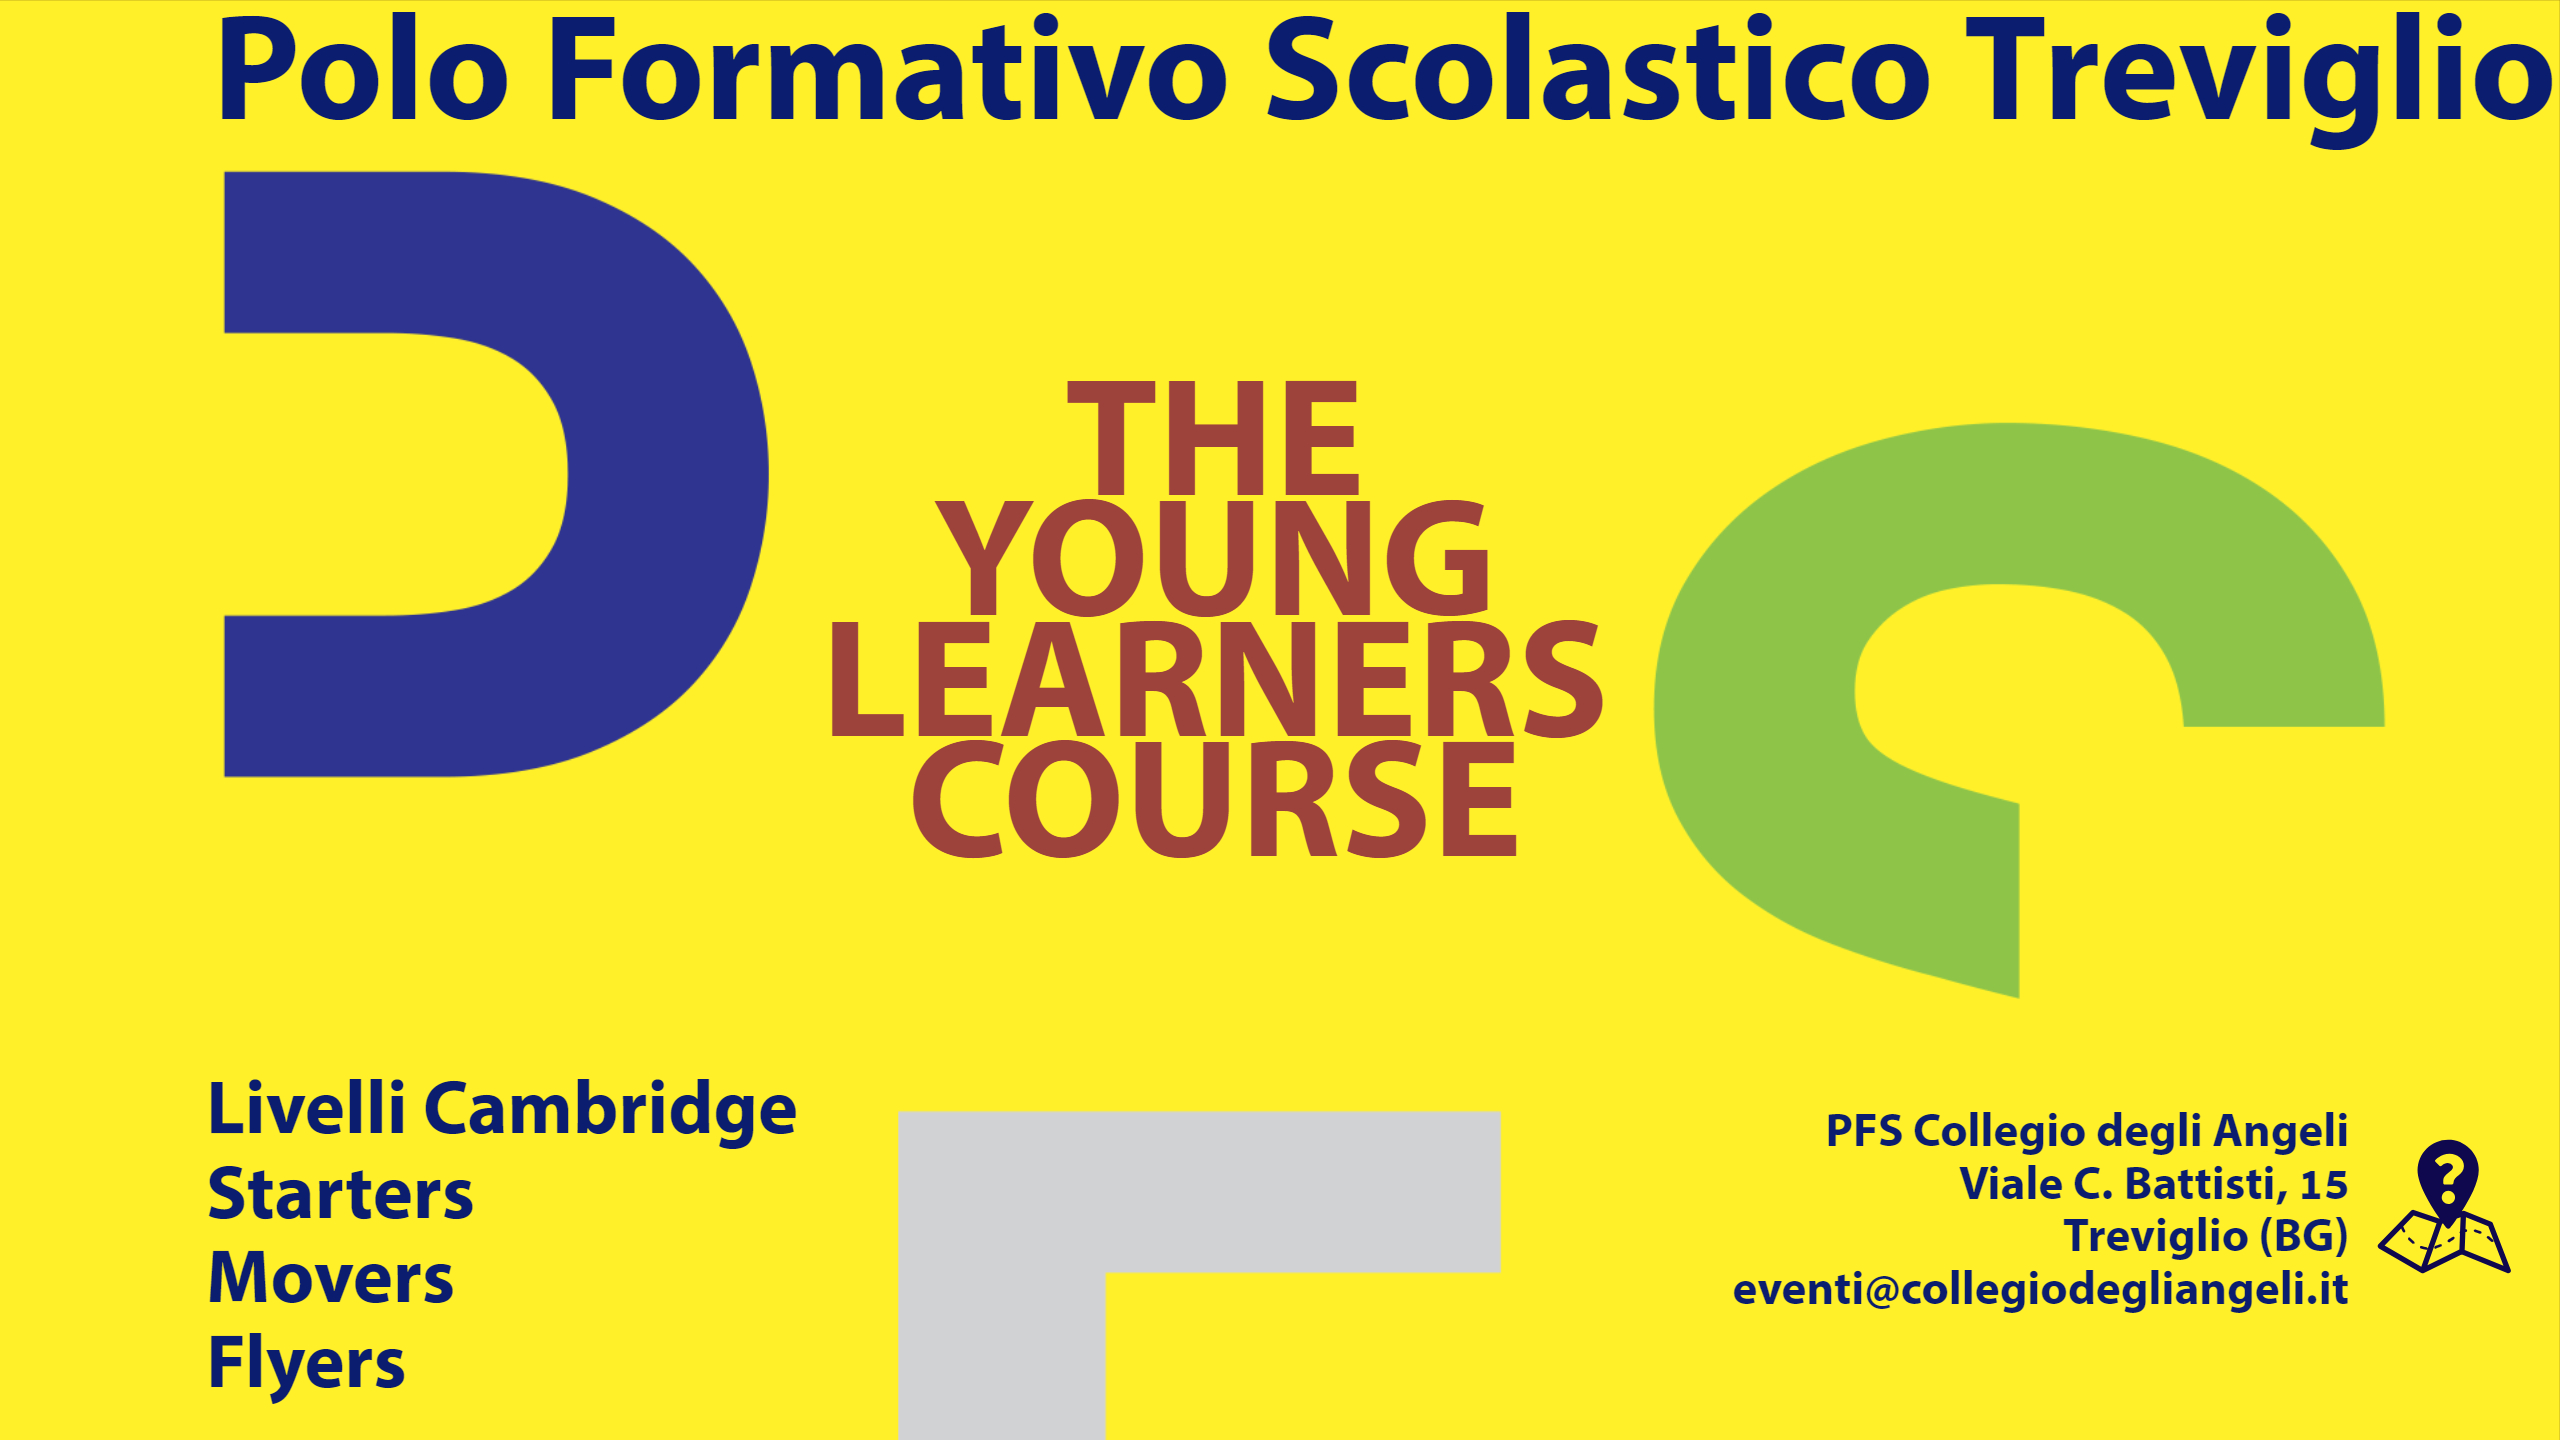 THE YOUNG LEARNERS COURSE